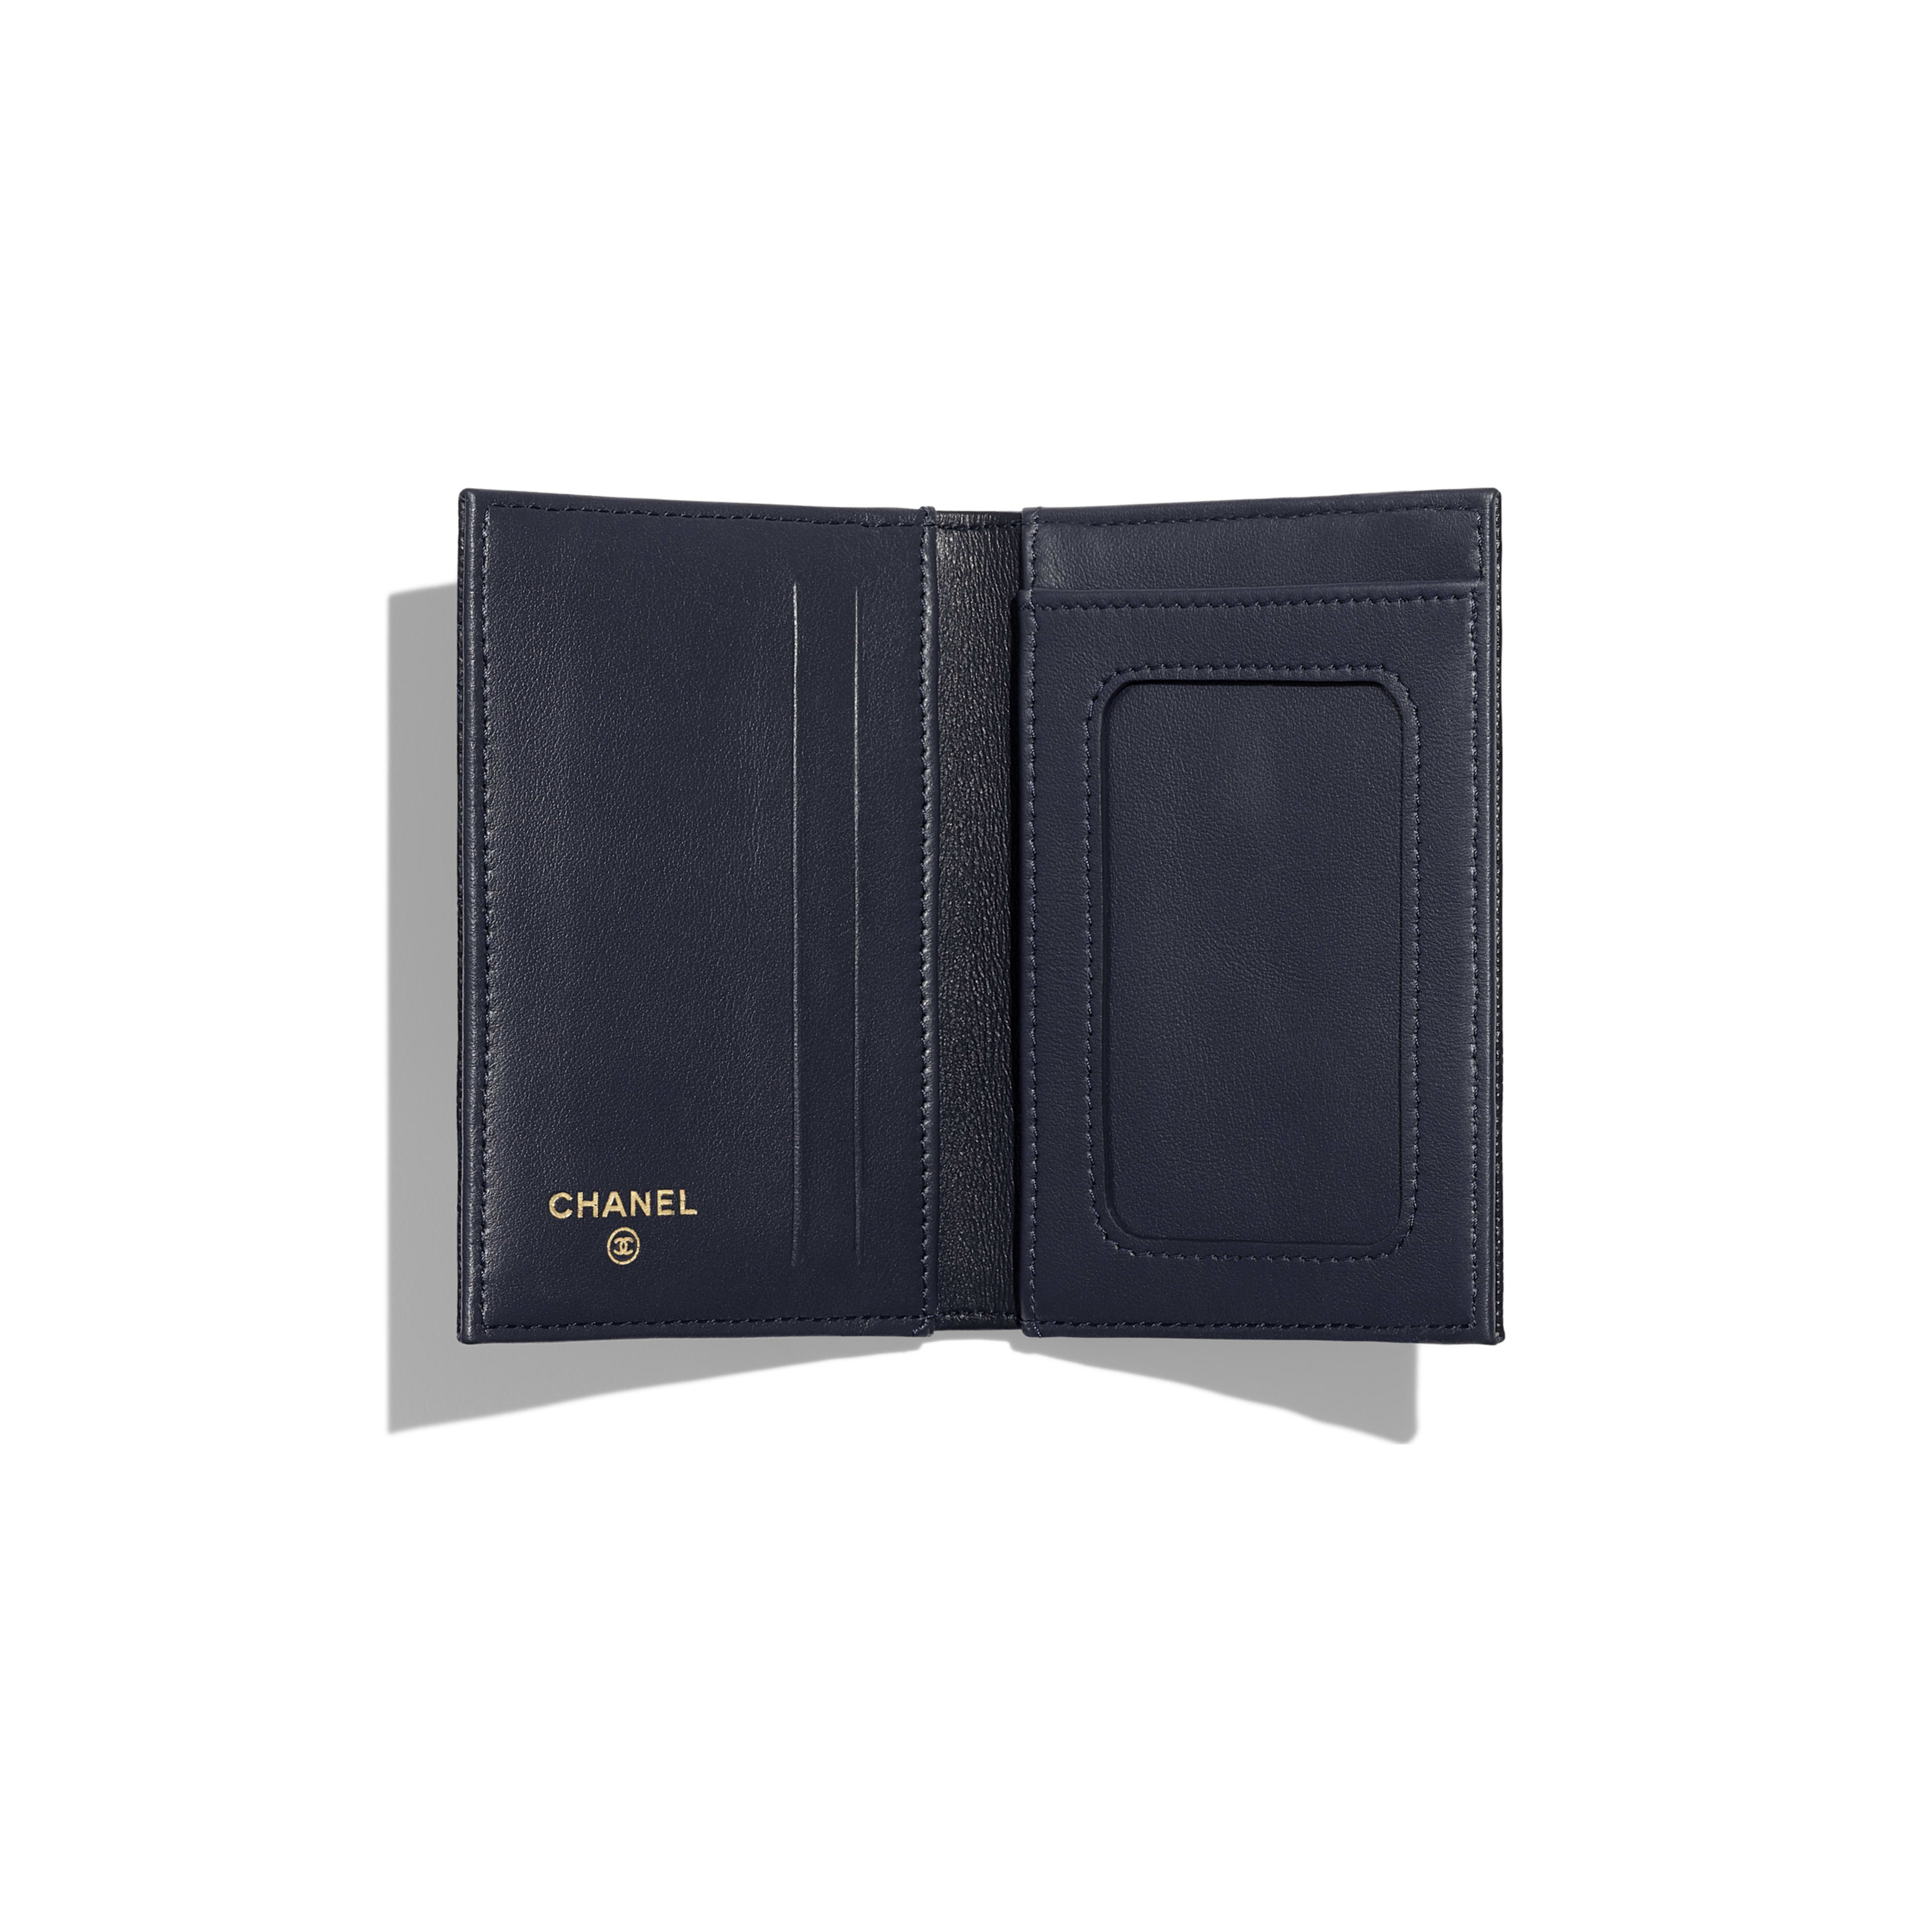 Classic Card Holder - Navy Blue - Grained Calfskin & Gold-Tone Metal - Other view - see full sized version